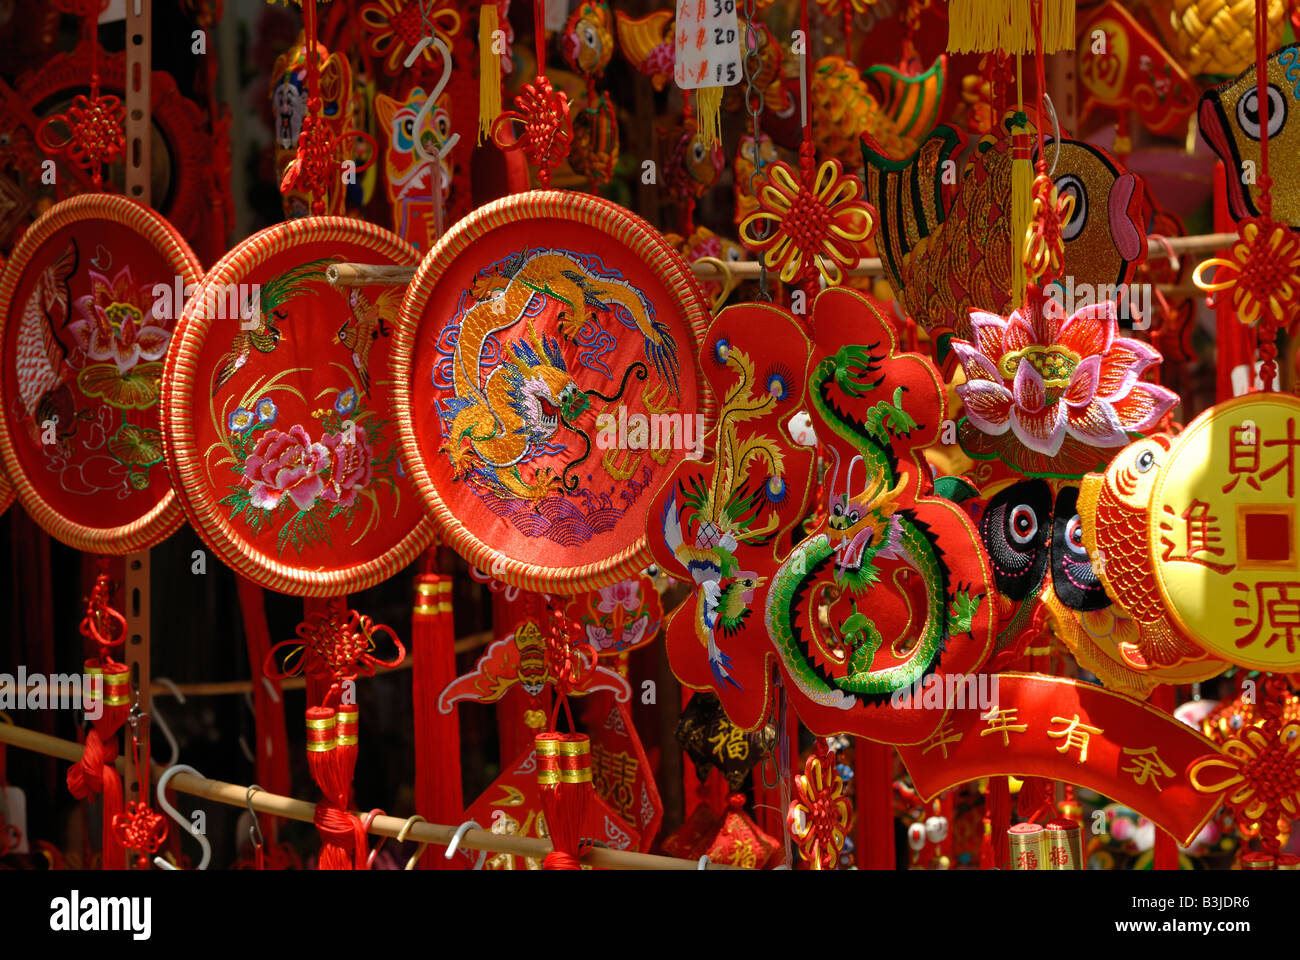 eeb58686a Chinese decorations for the Mid-Autumn festival Stock Photo ...